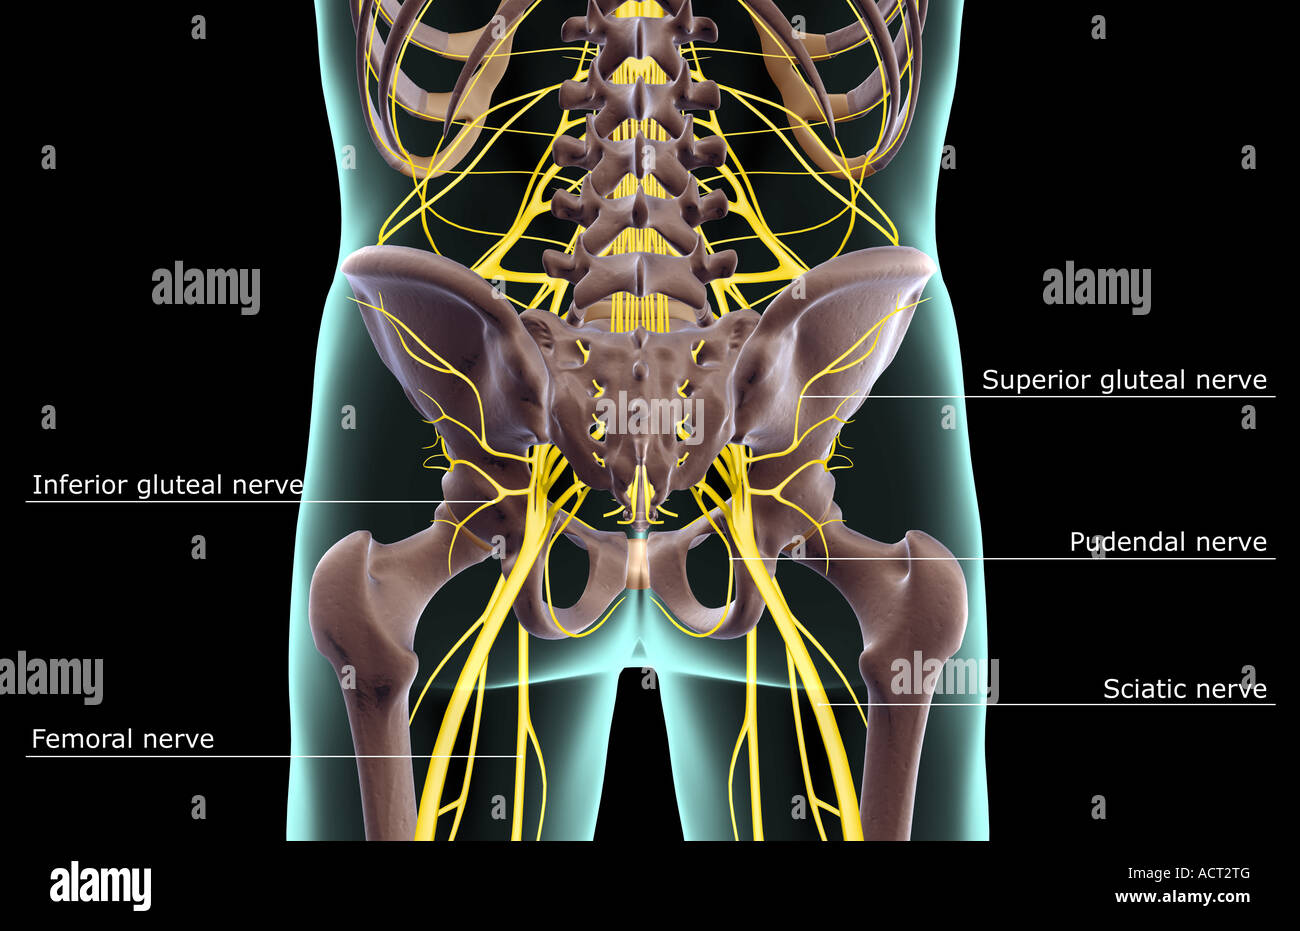 The Nerves Of The Lower Body Stock Photo 13222335 Alamy